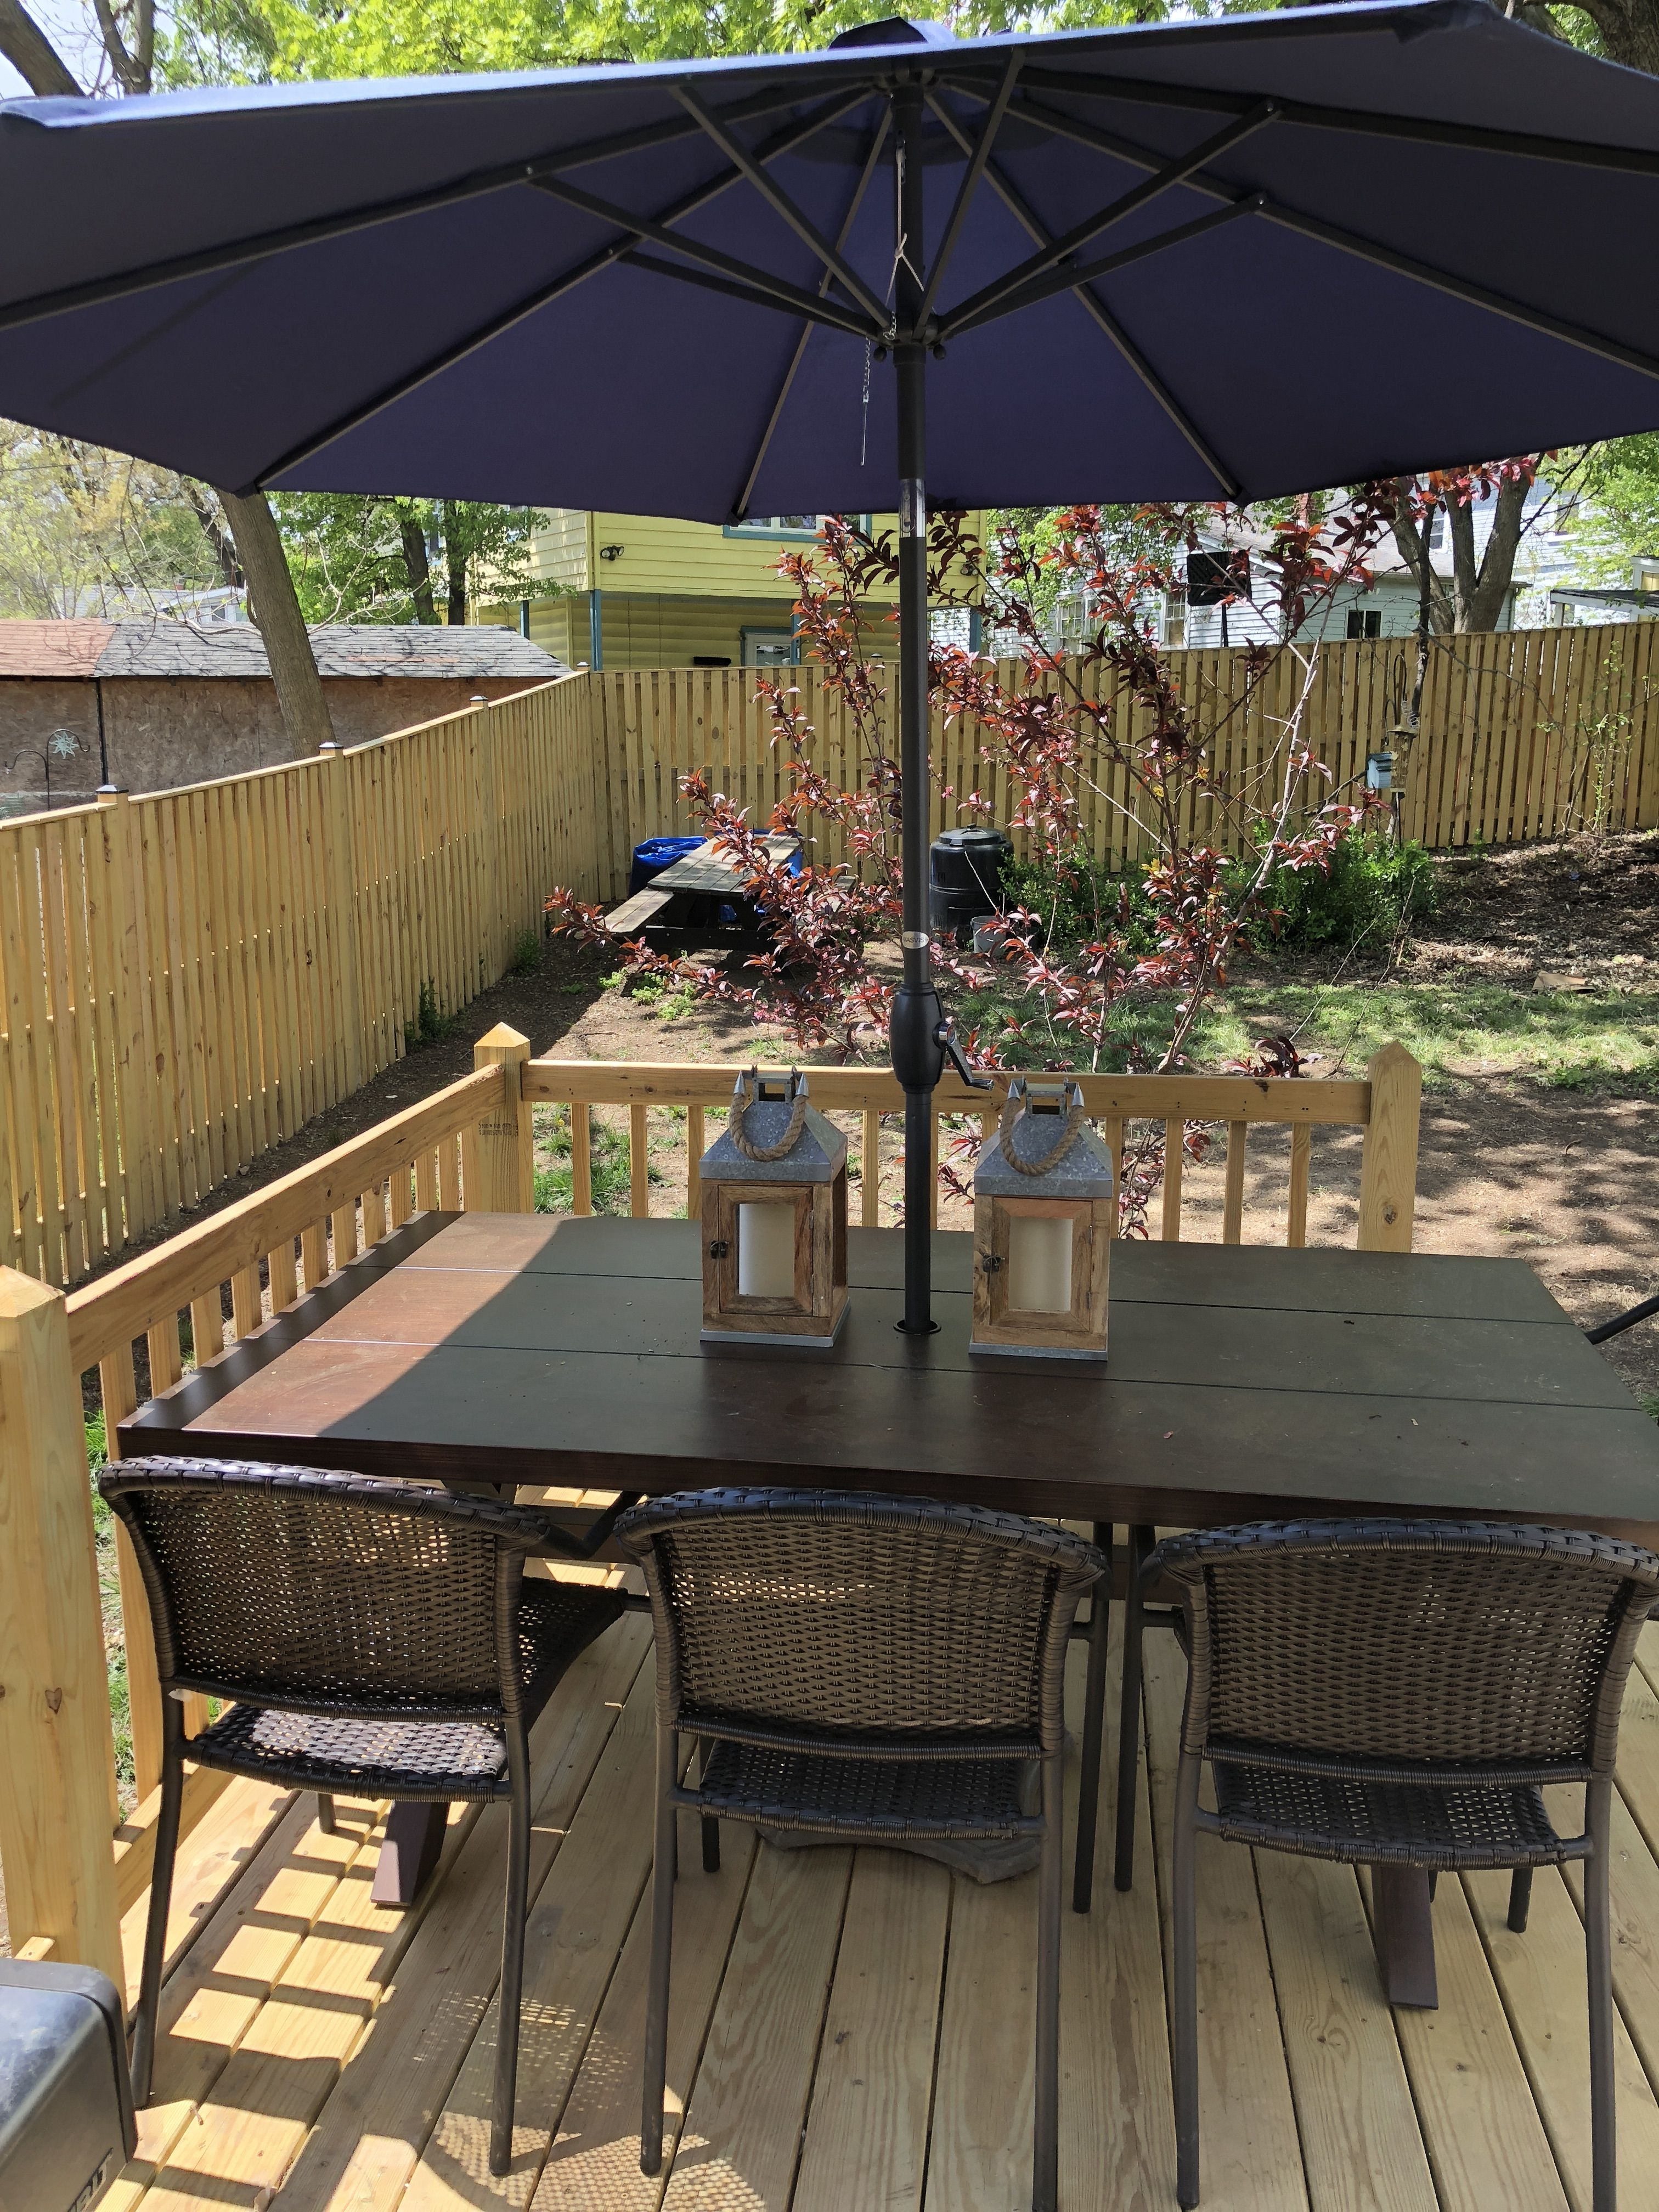 New outdoor table from lowes. It is Atworth metal wood ...